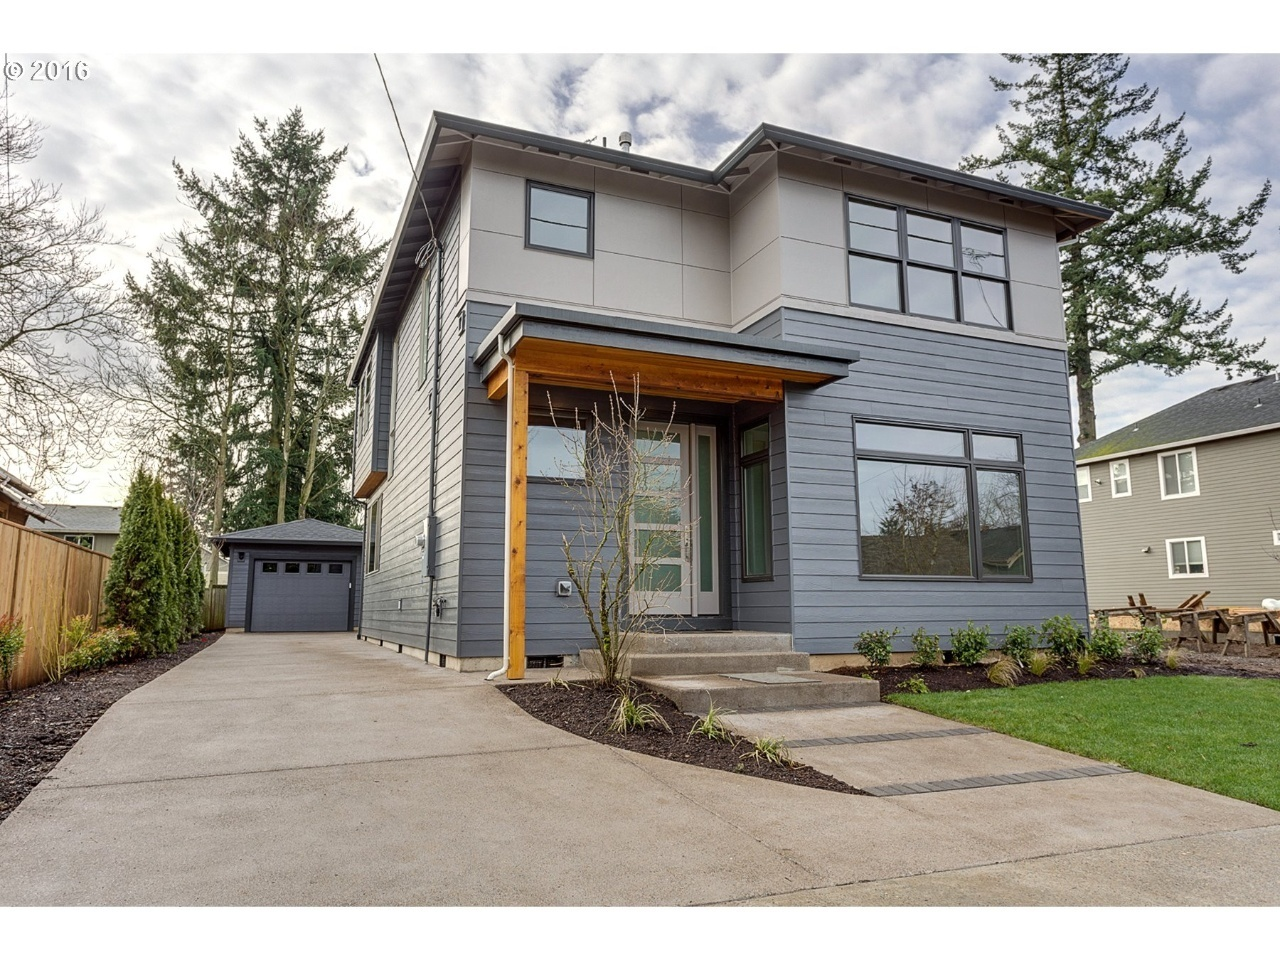 4902 se ogden st portland or 97206 mls 16253694 redfin for Contemporary home exterior